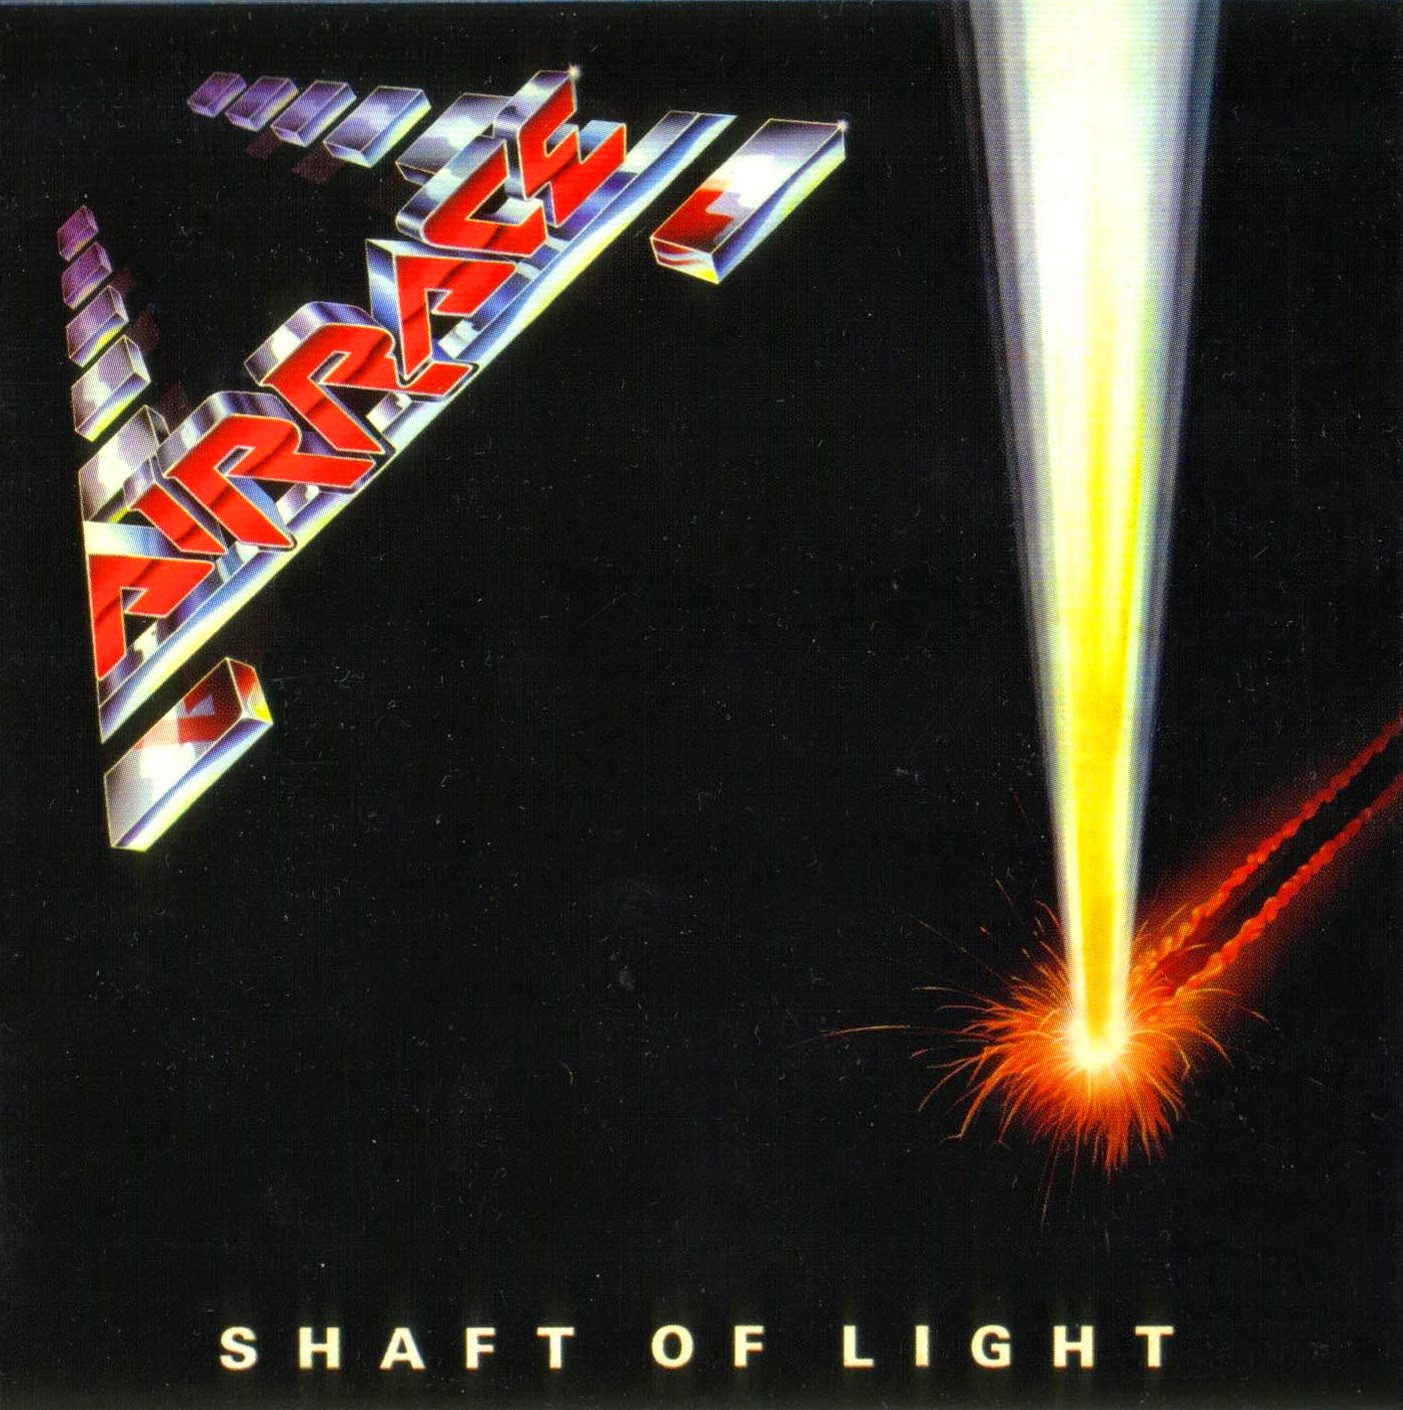 Airrace Shaft of light 1984 aor melodic rock music blogspot bands albums